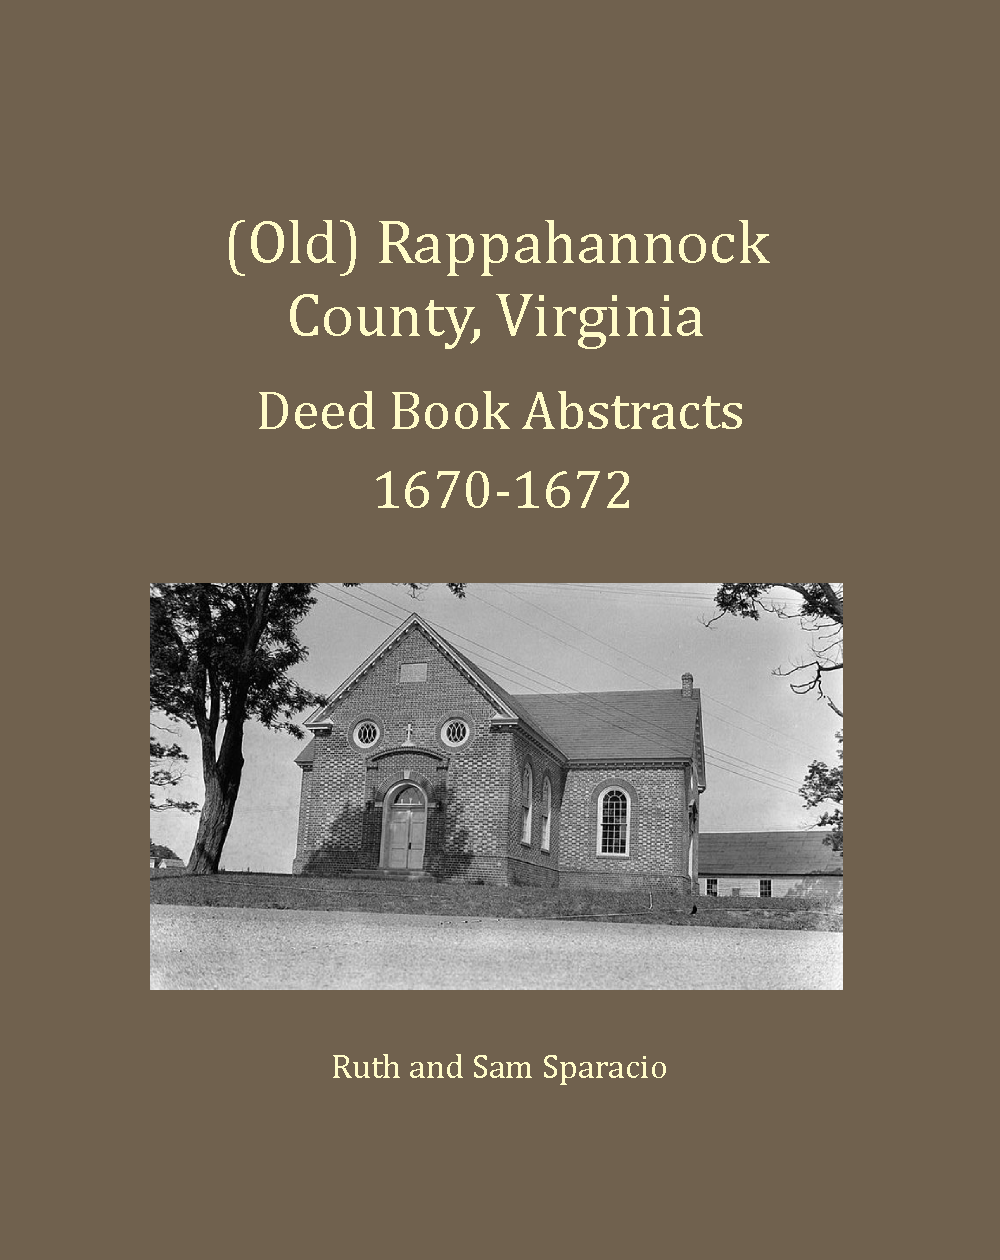 (Old) Rappahannock County, Virginia Deed and Will Book Abstracts, 1670-1672